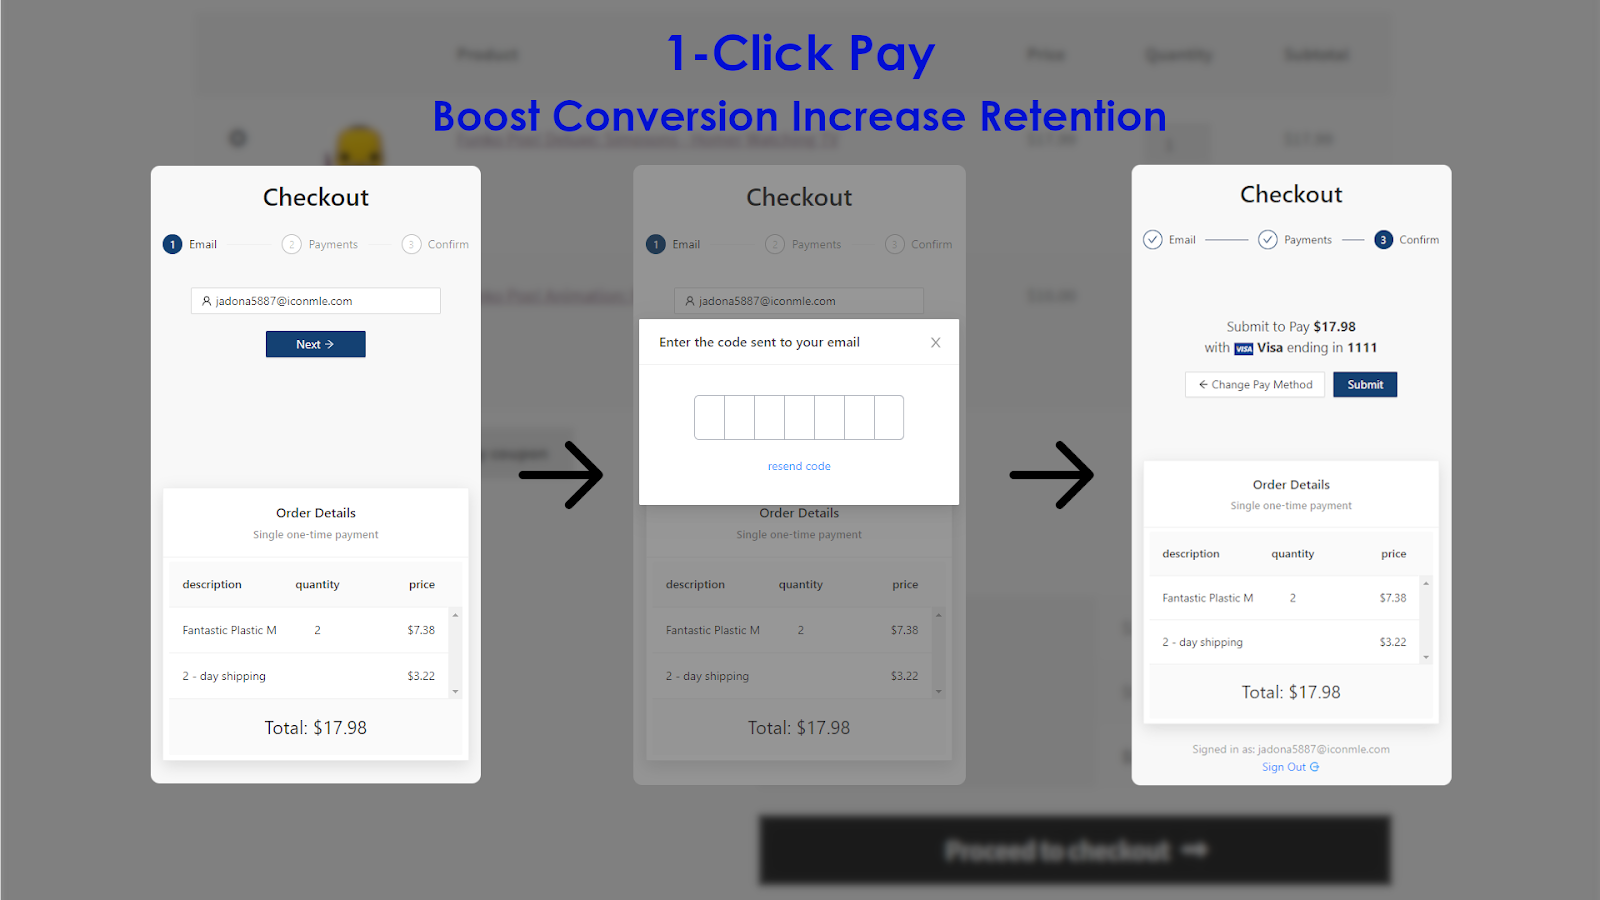 1-Click Pay.